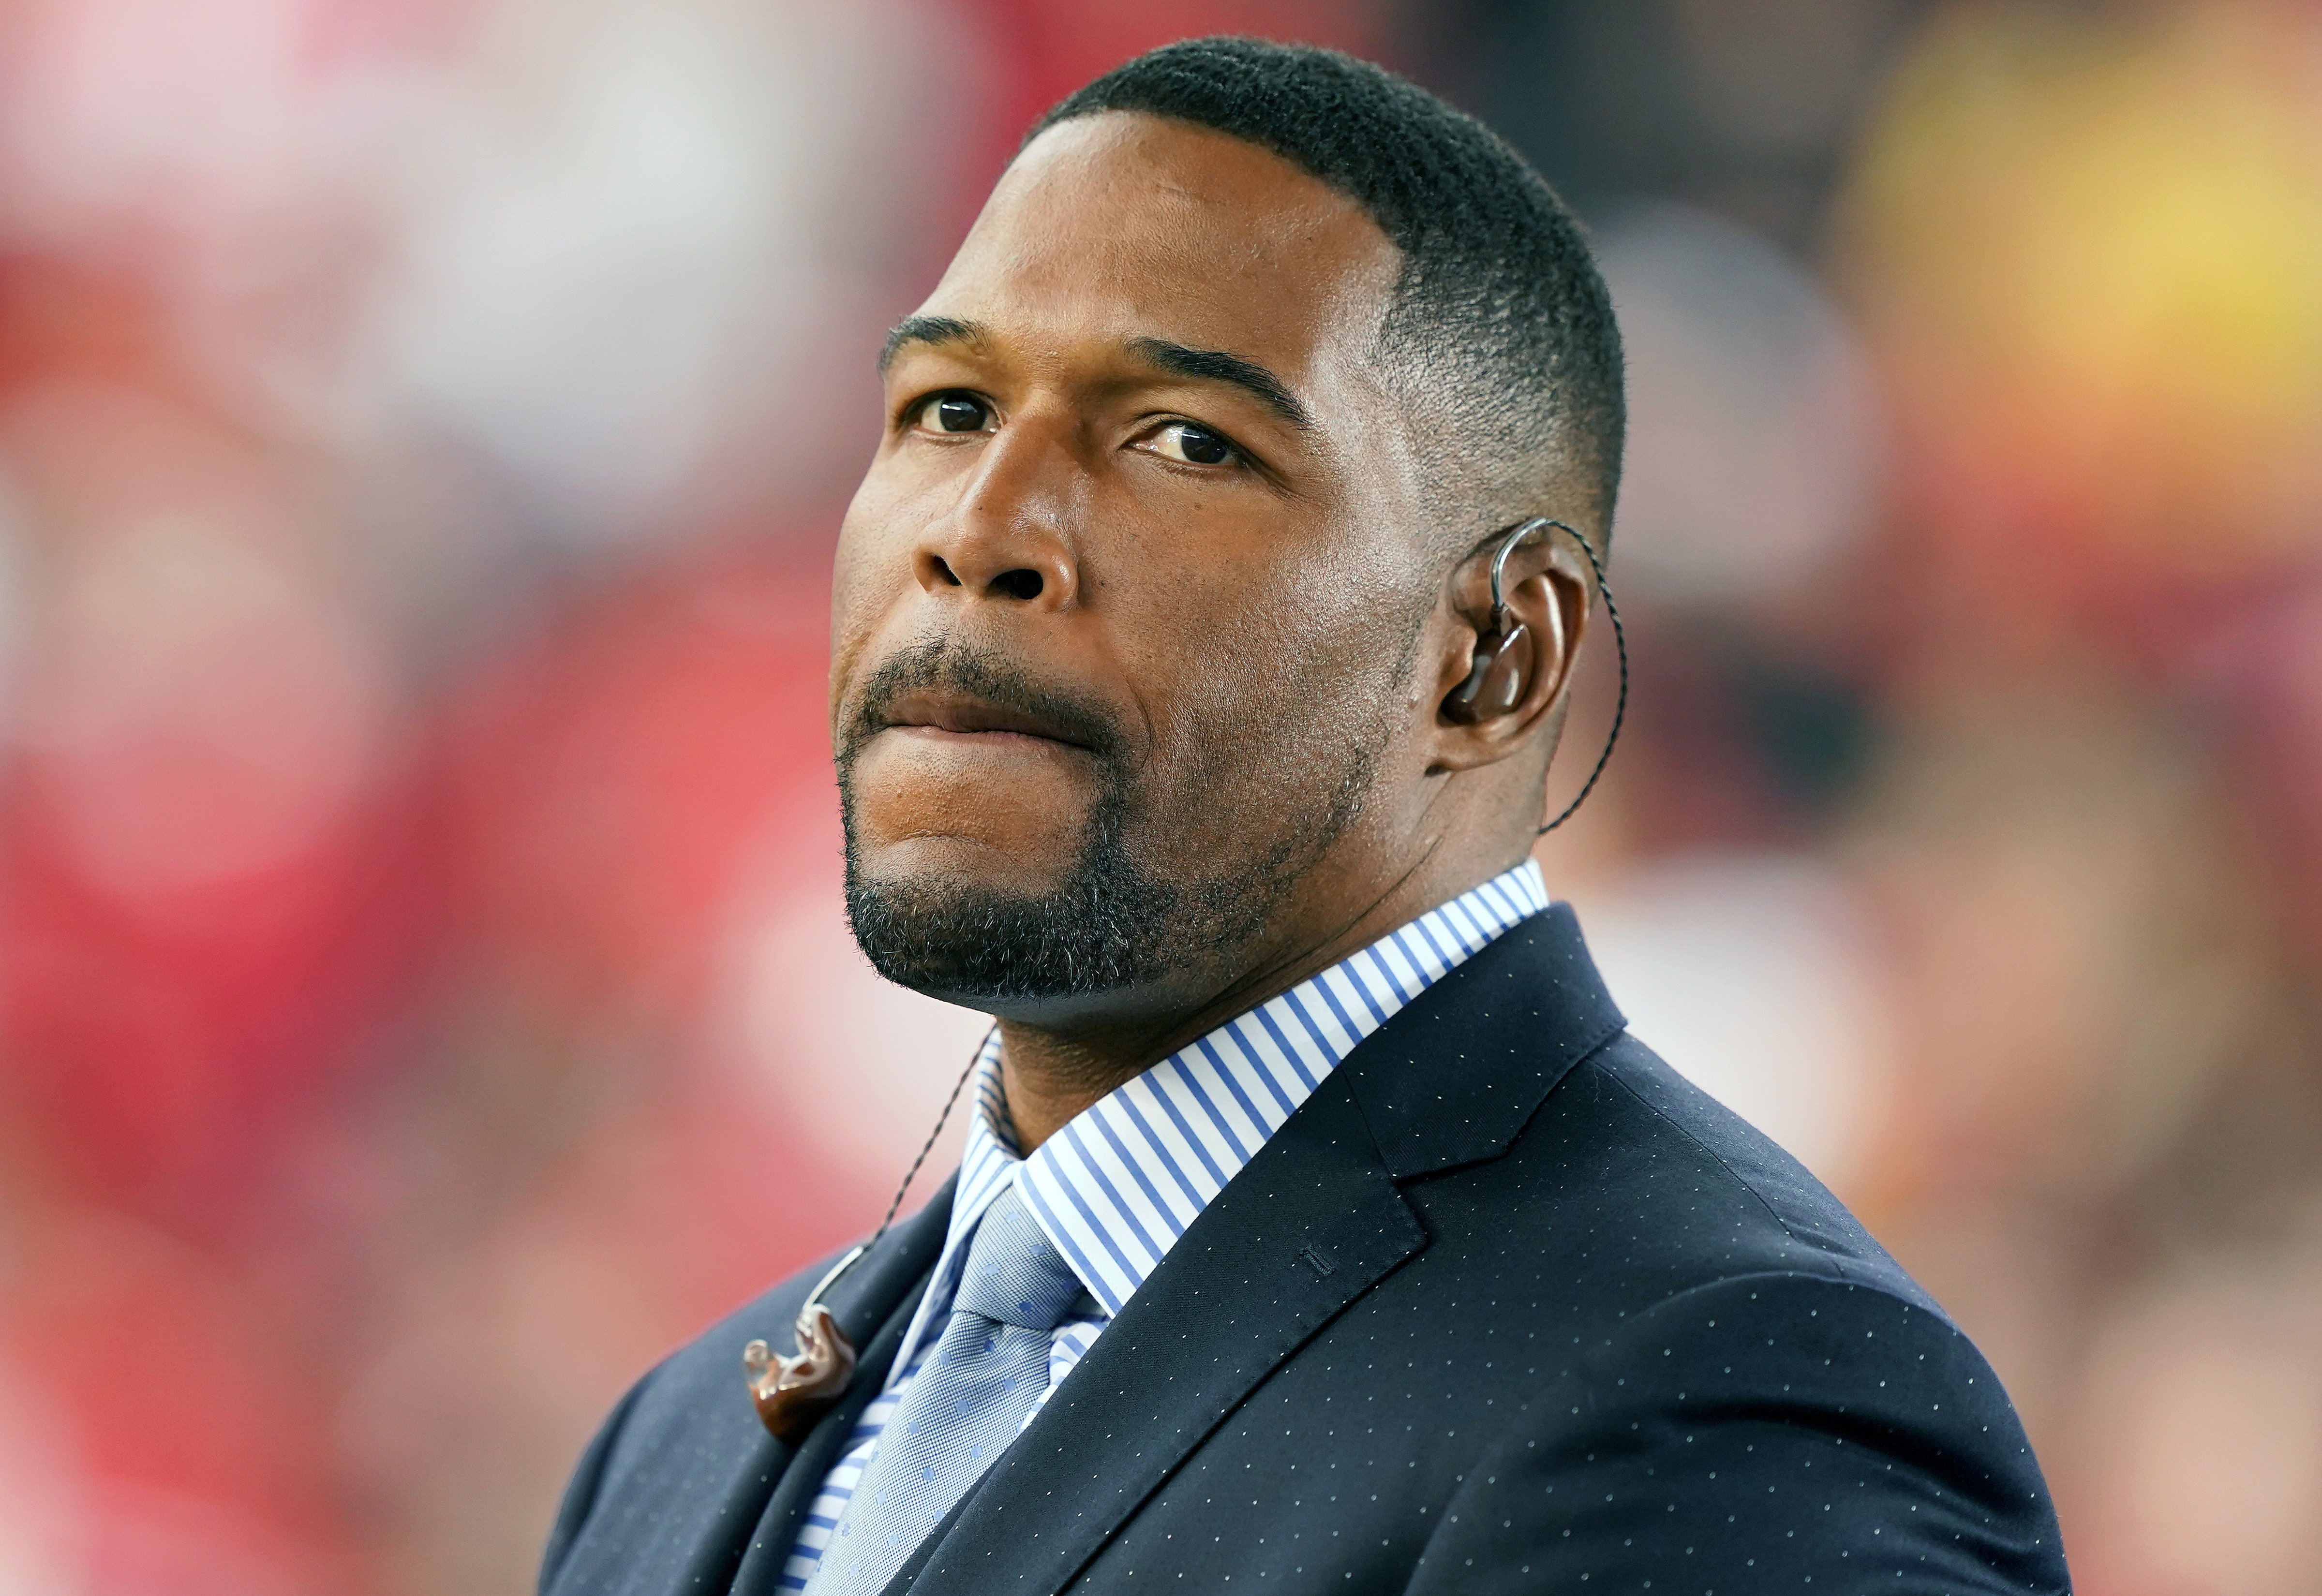 TV host Michael Strahan attends the NFC Championship game at Levi's Stadium in January 2020 in Santa Clara, California. | Photo: Getty Images